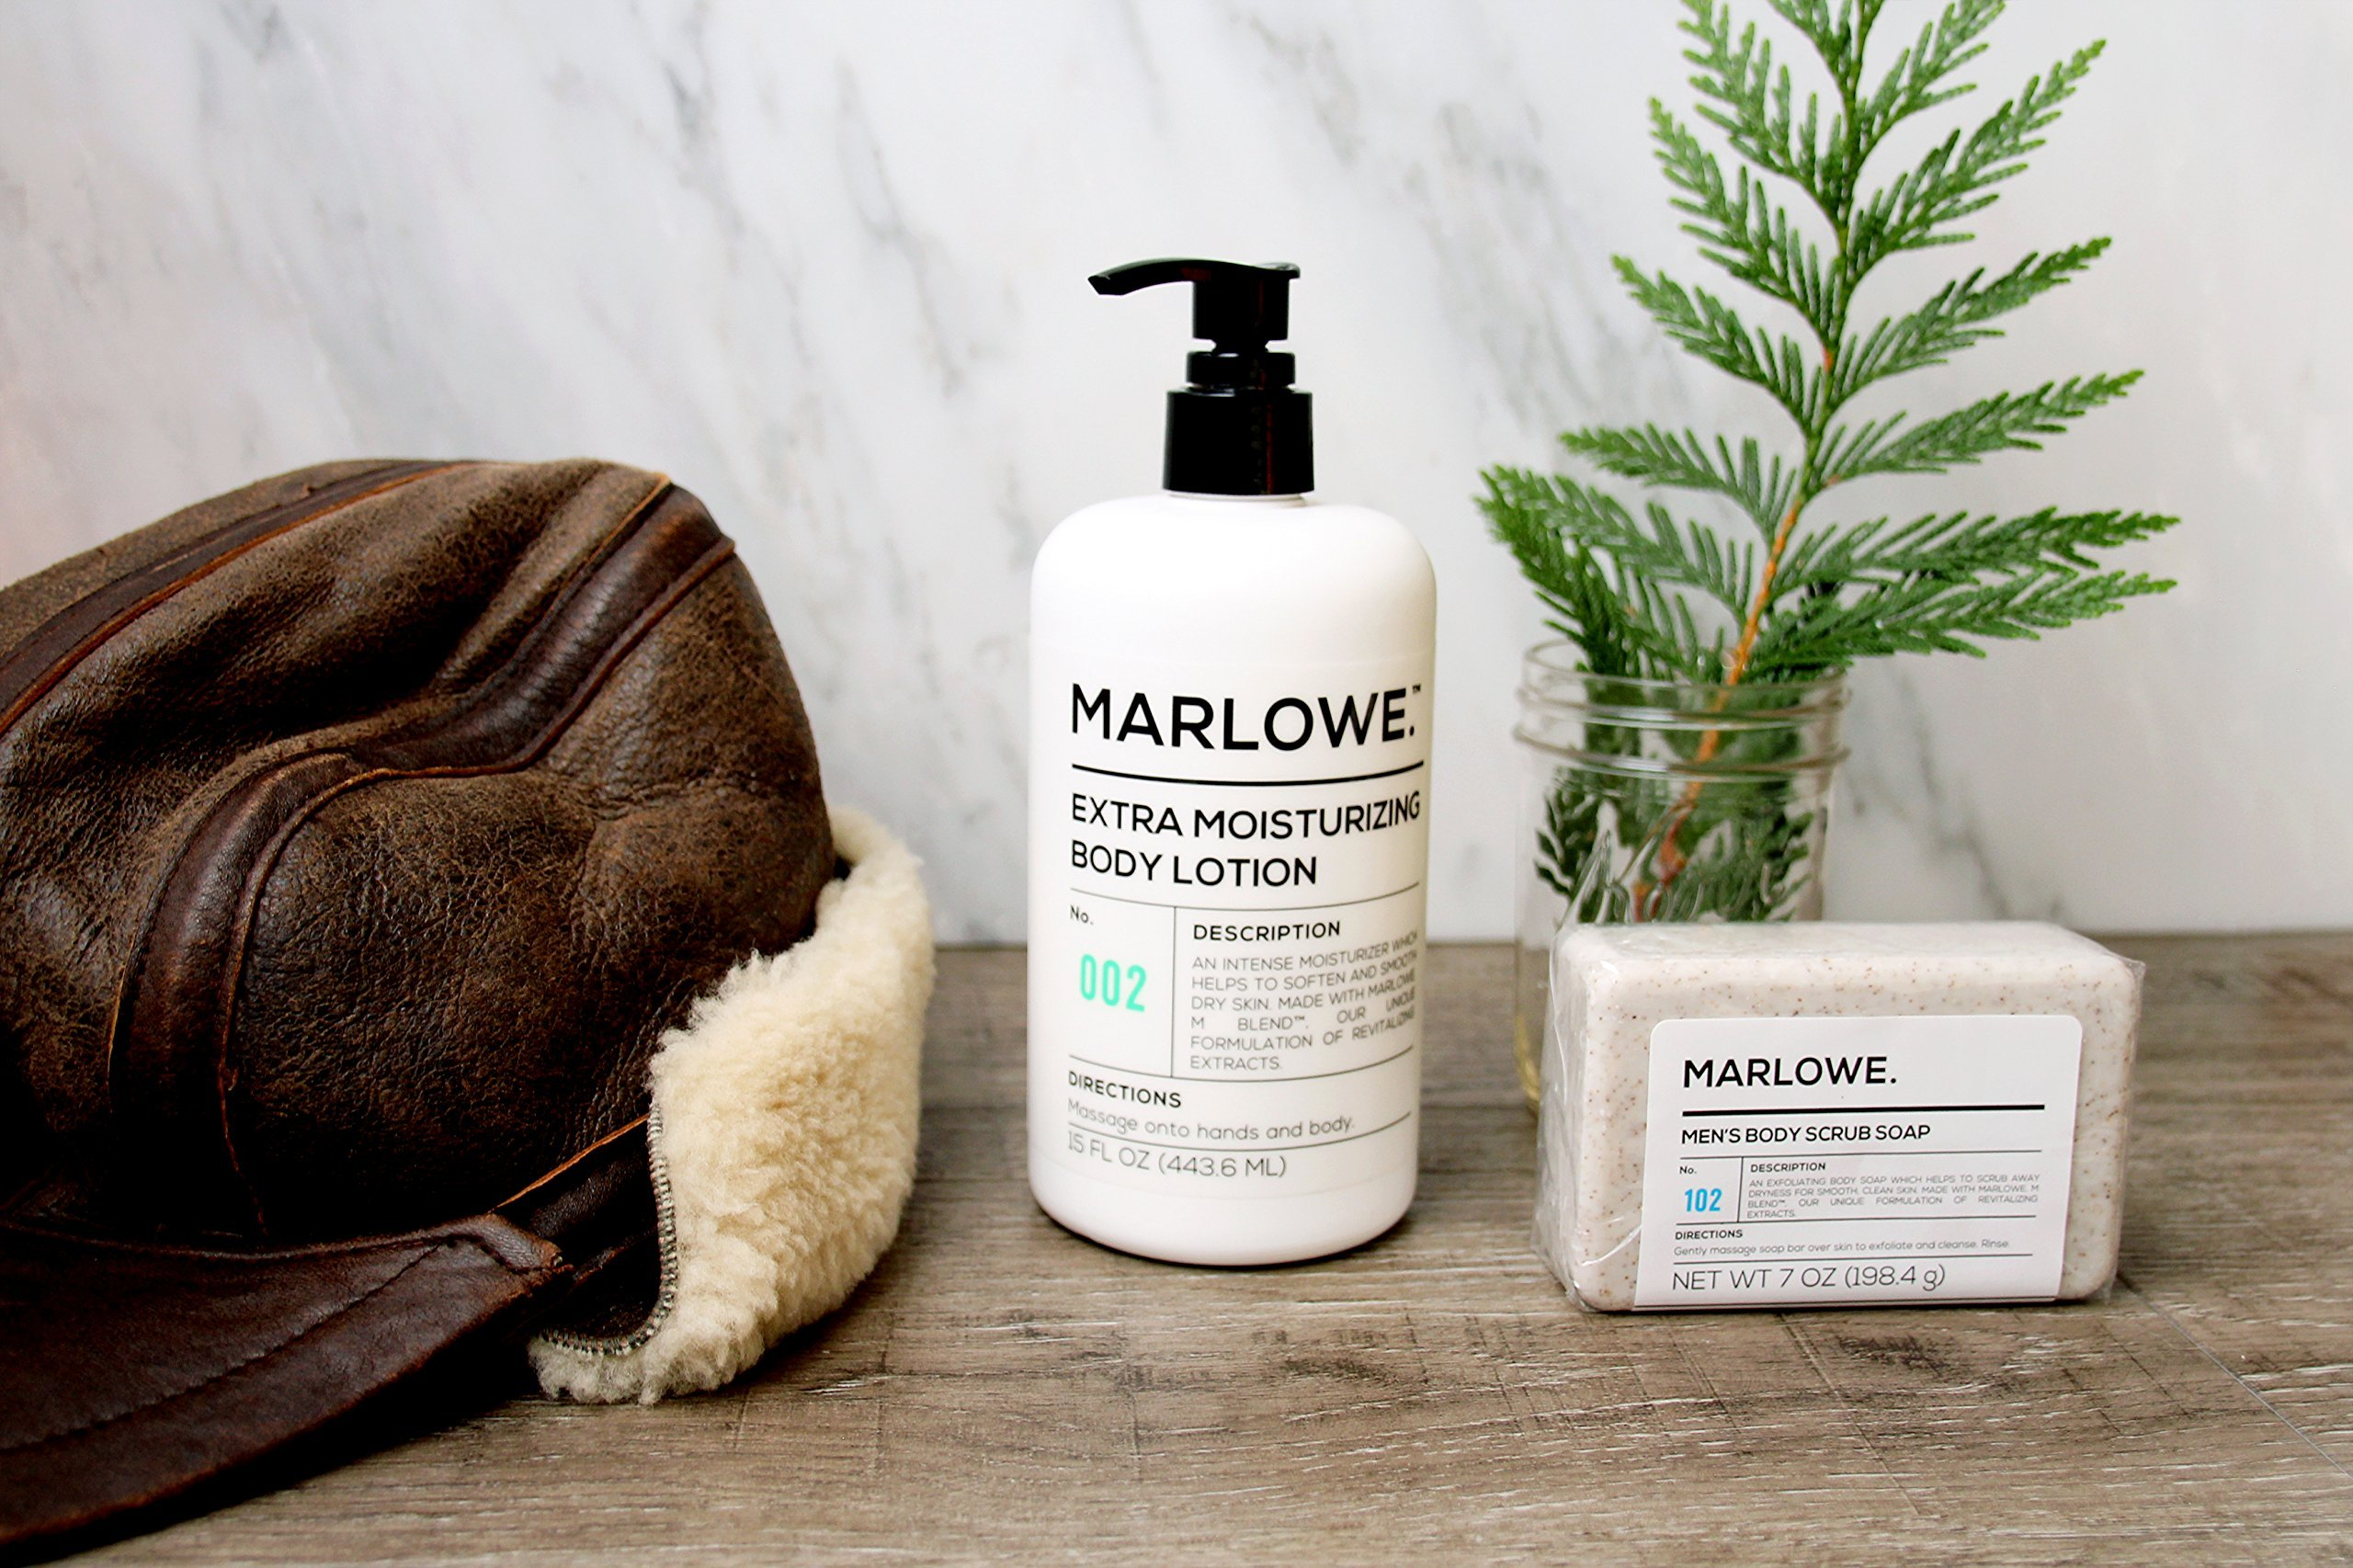 MARLOWE. 002 Extra Moisturizing Body Lotion 15 oz | Daily Lotion for Dry Skin for Men and Women | Light Fresh Scent | Made with Natural Ingredients | Vegan & Cruelty-Free by Marlowe (Image #6)